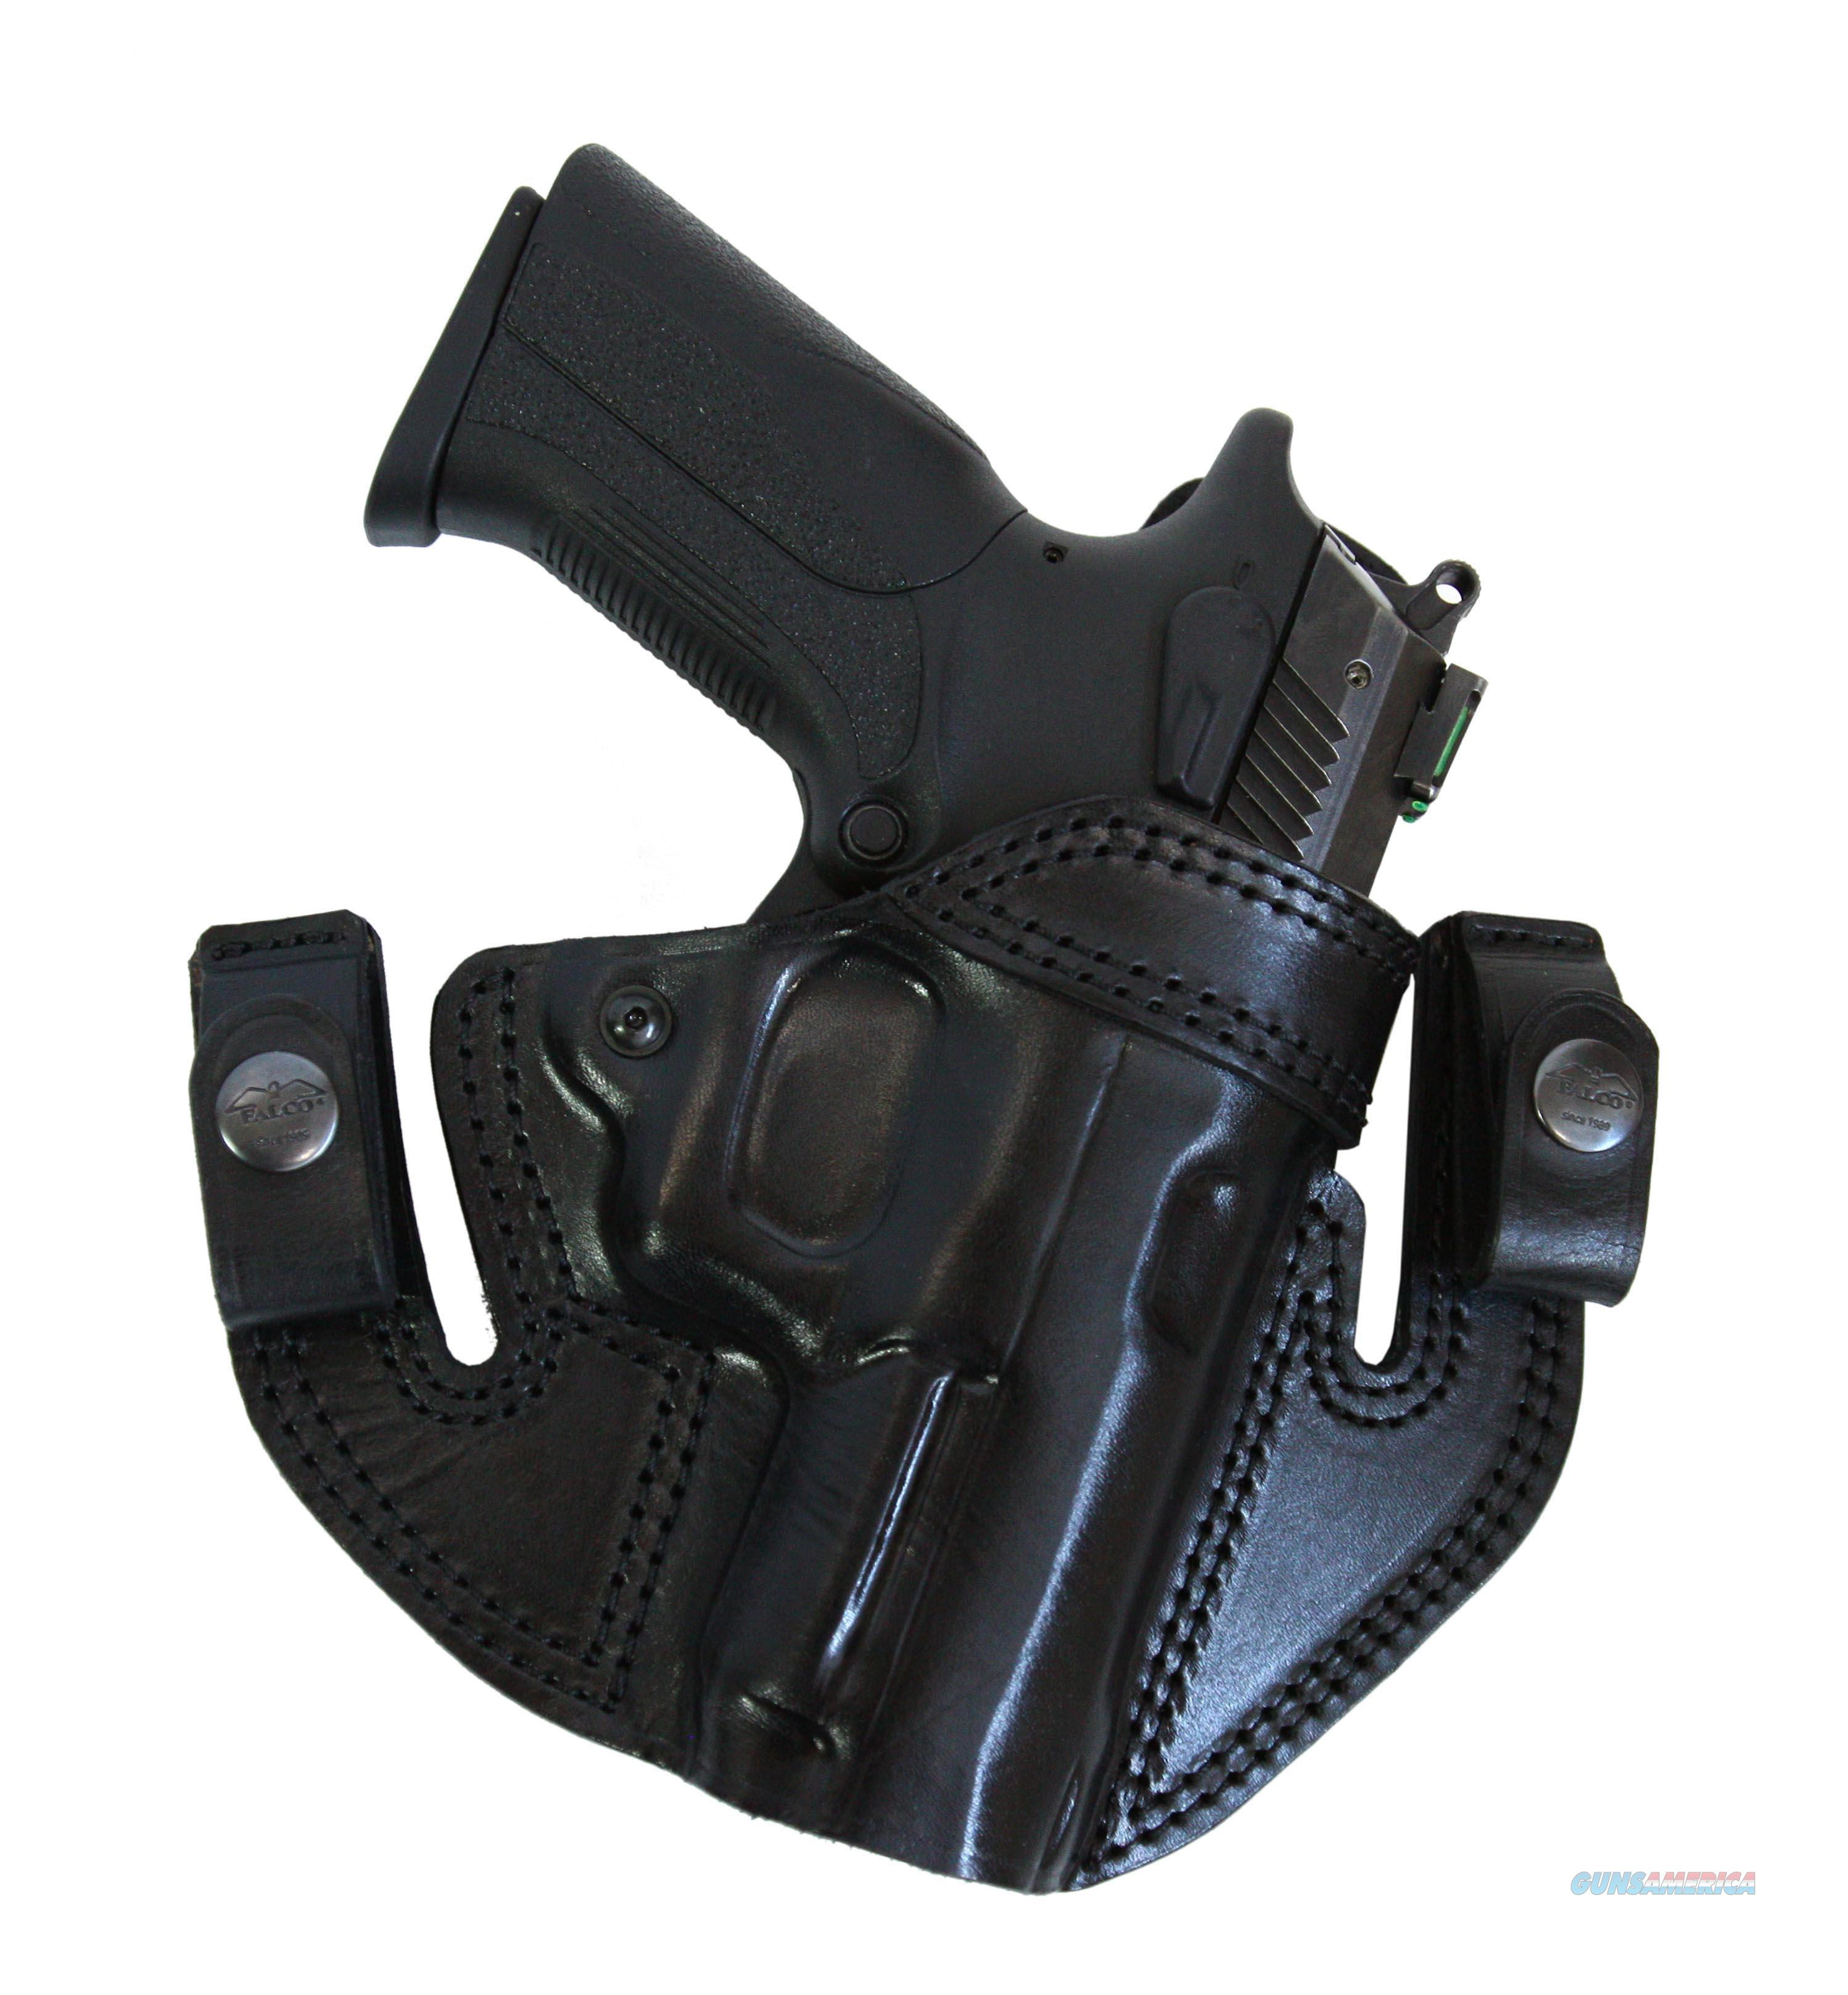 IWB / OWB Leather Gun Holster  Sig Sauer P250Dcc  Non-Guns > Holsters and Gunleather > Concealed Carry